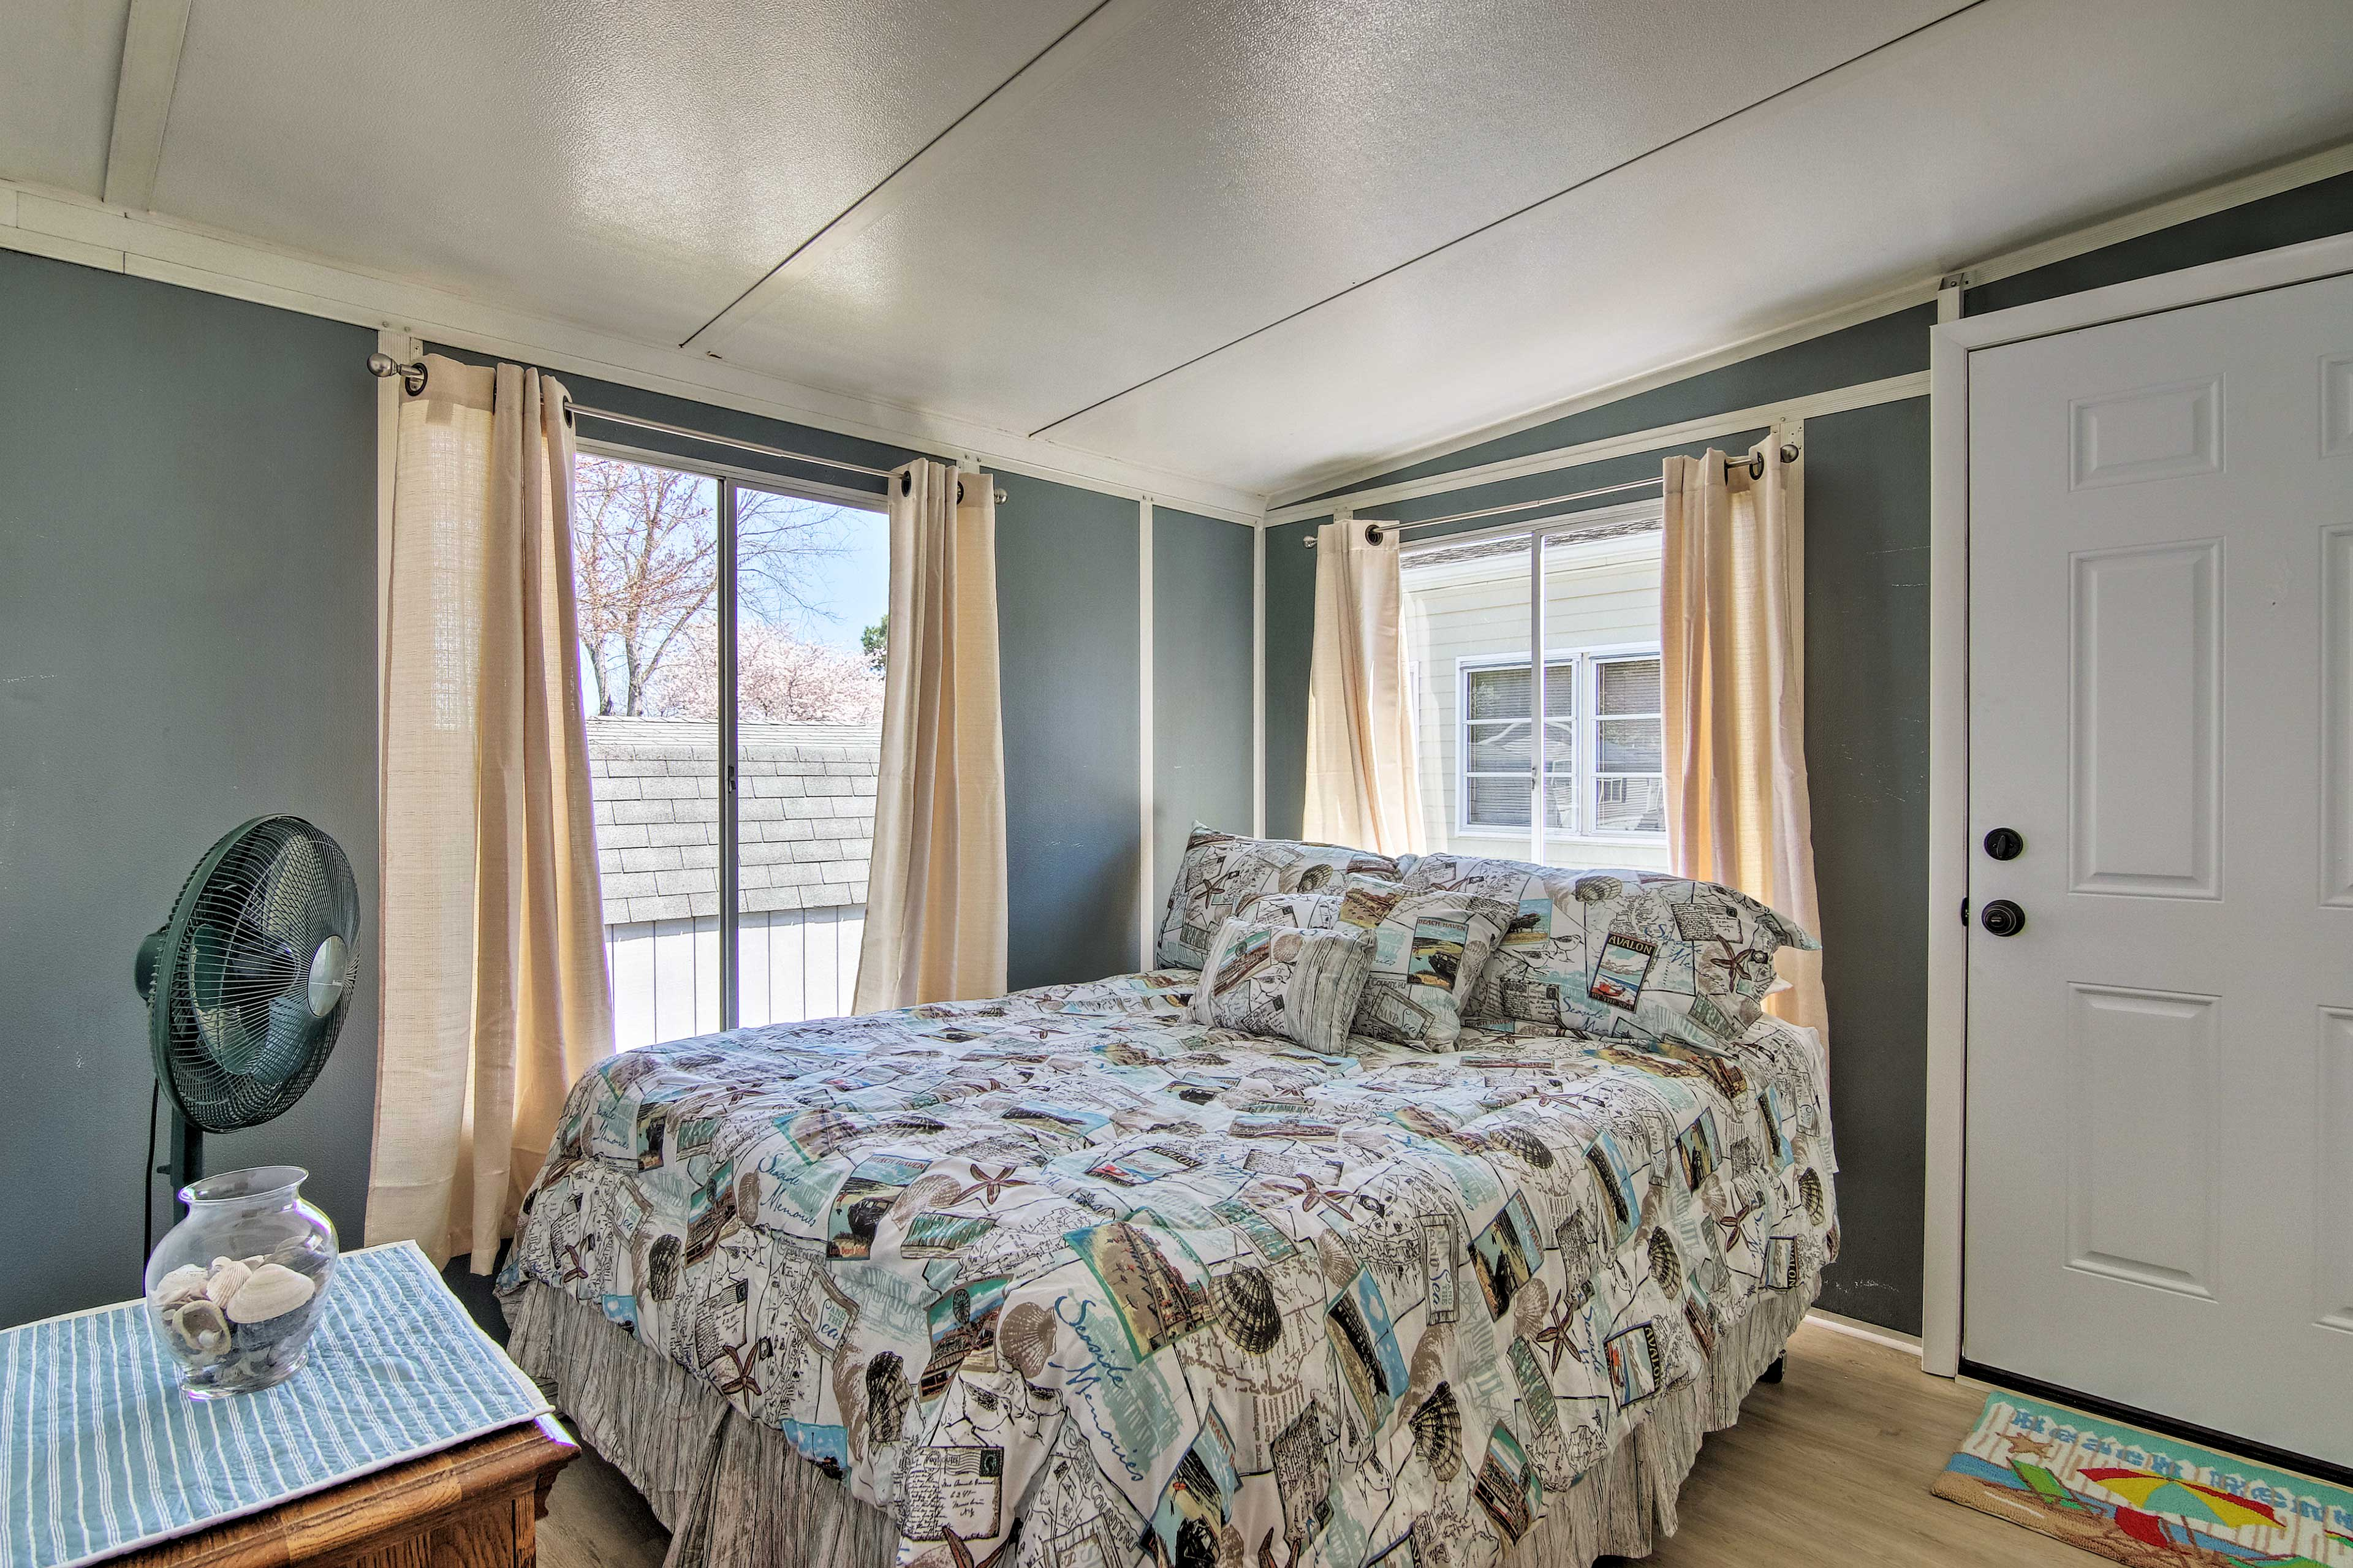 The 2nd bedroom includes a queen bed and standing fan for summer nights.